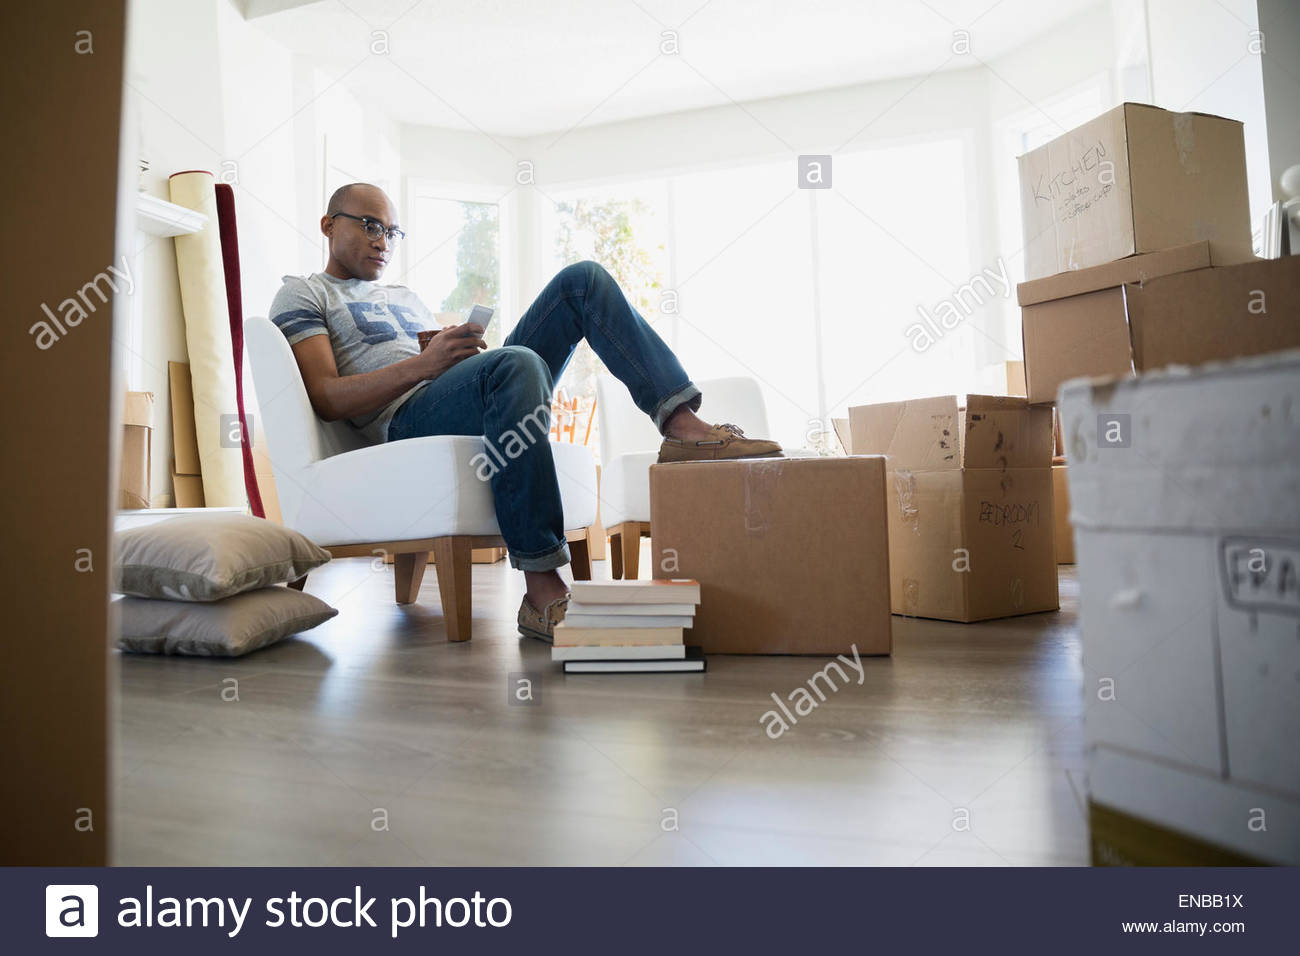 Man texting surrounded by moving boxes - Stock Image